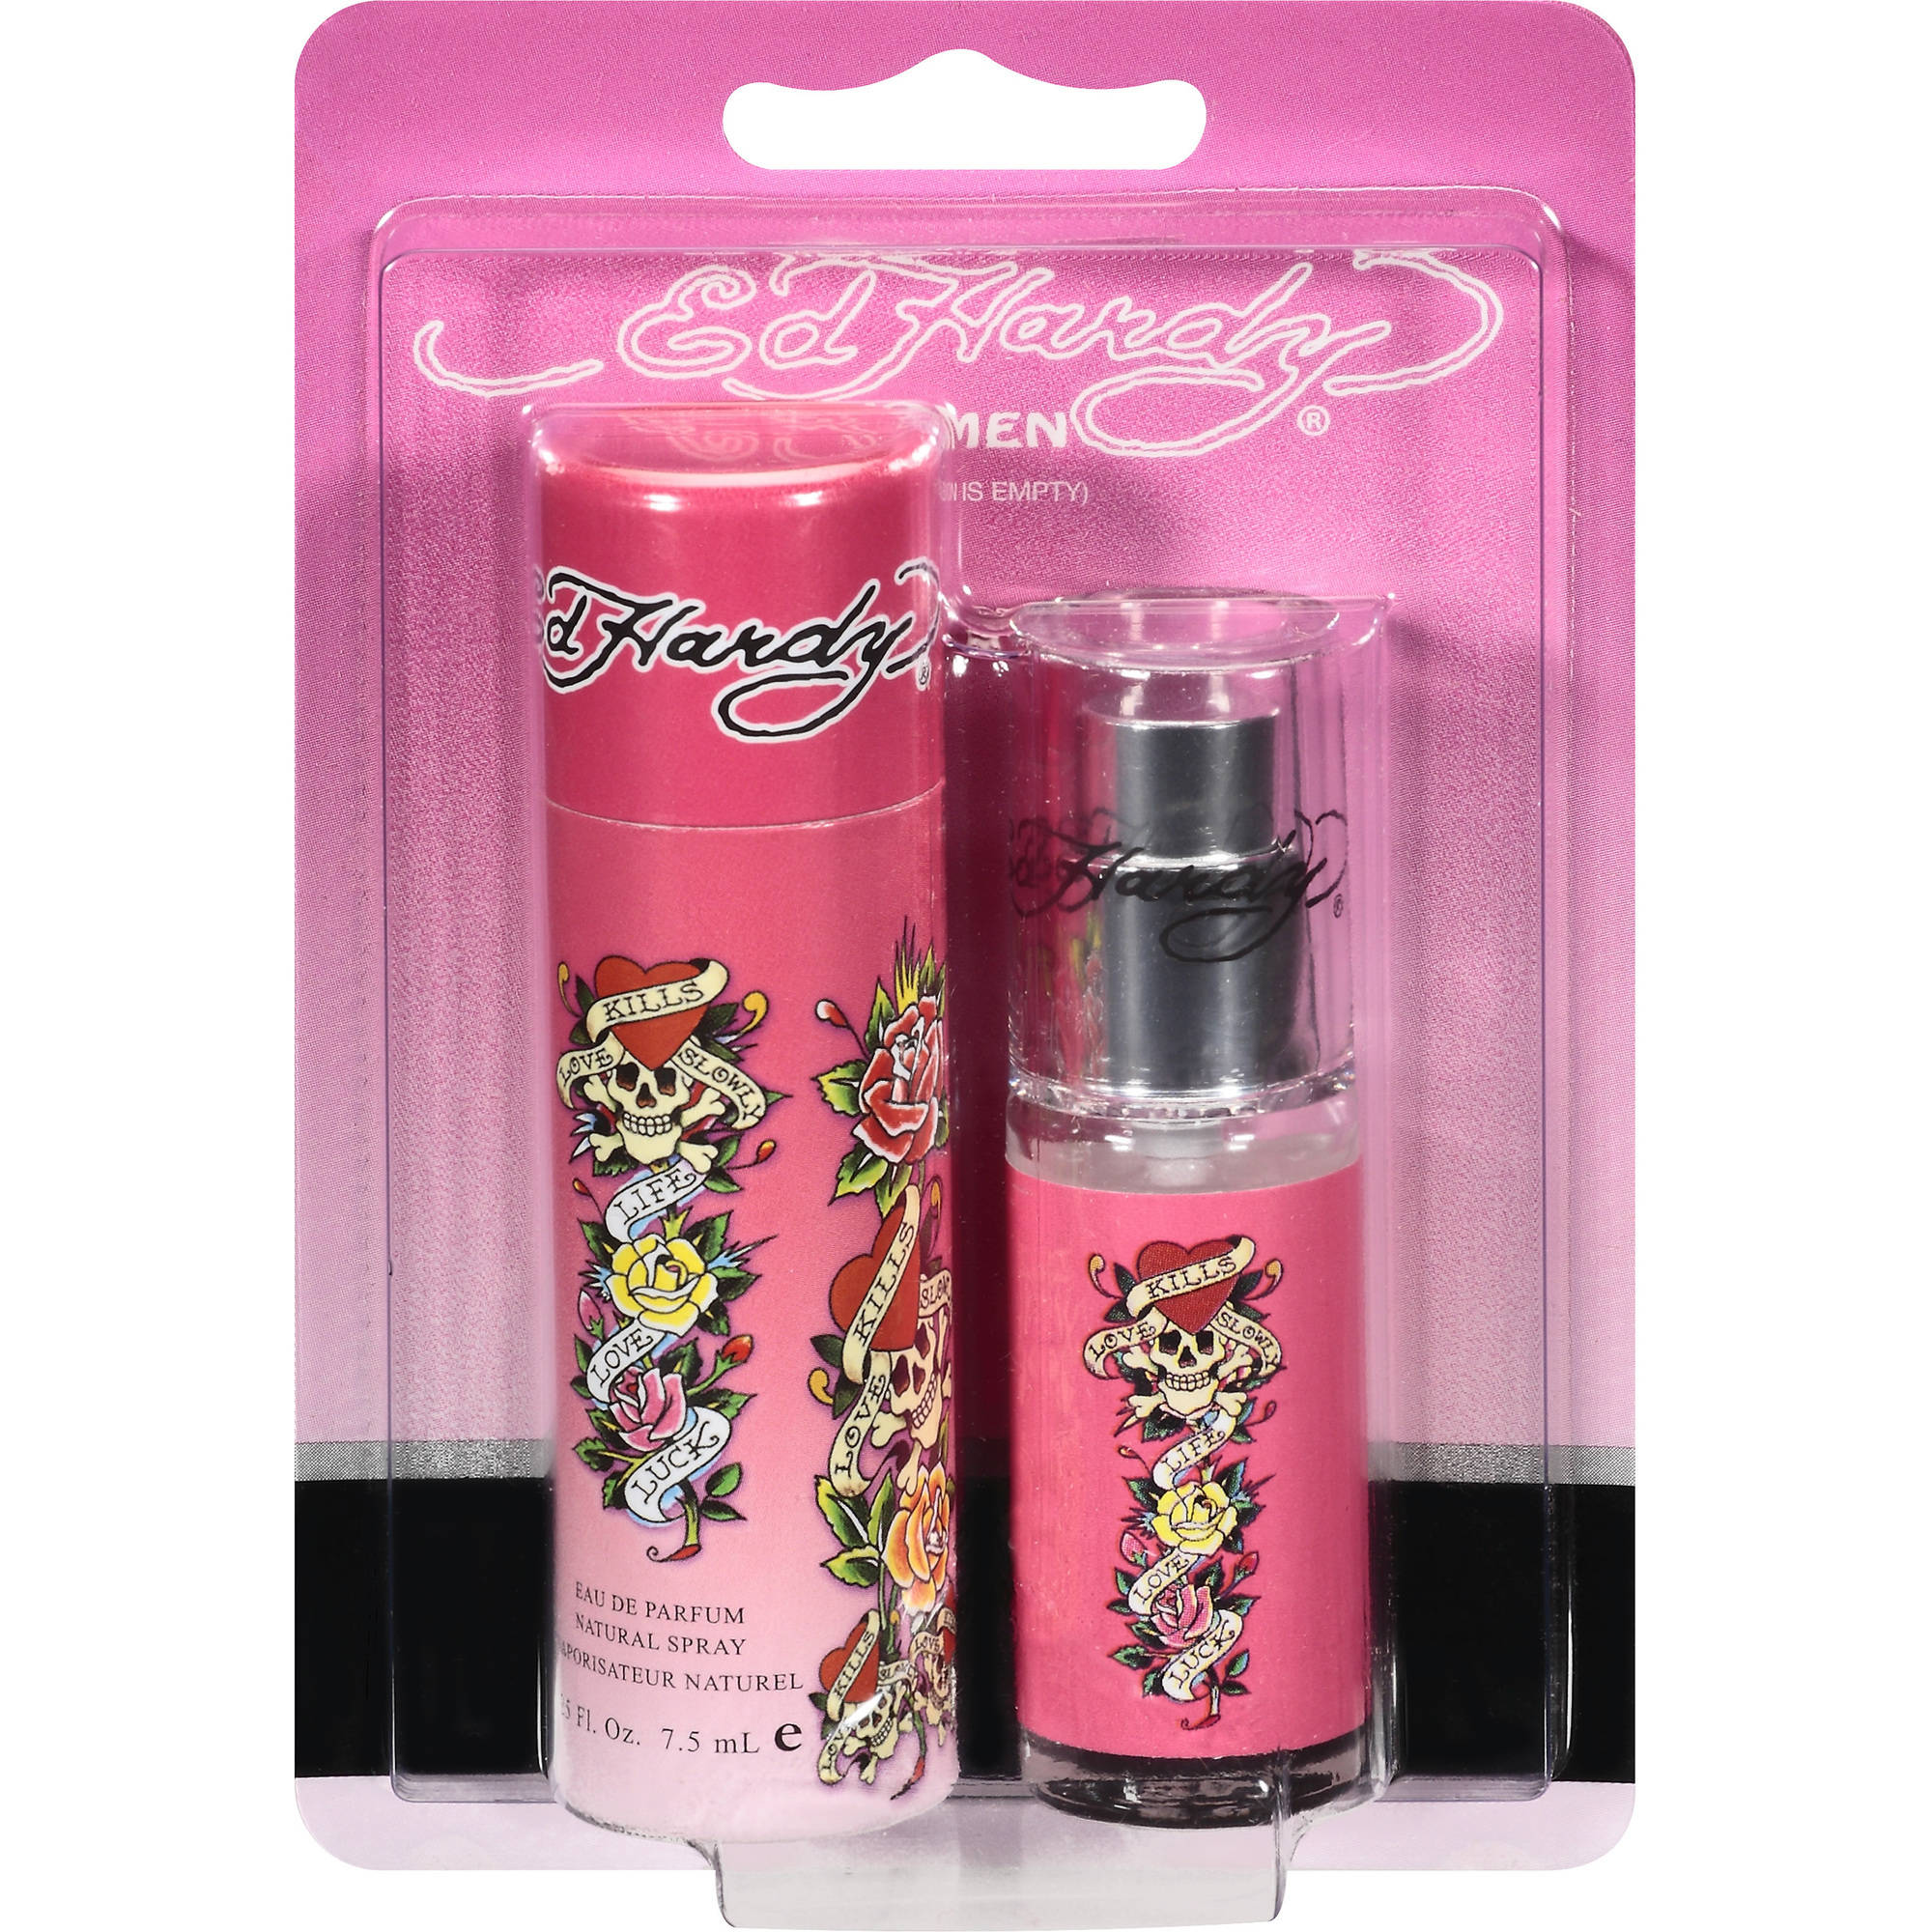 Ed Hardy Eau De Parfum Spray For Women, .25 oz